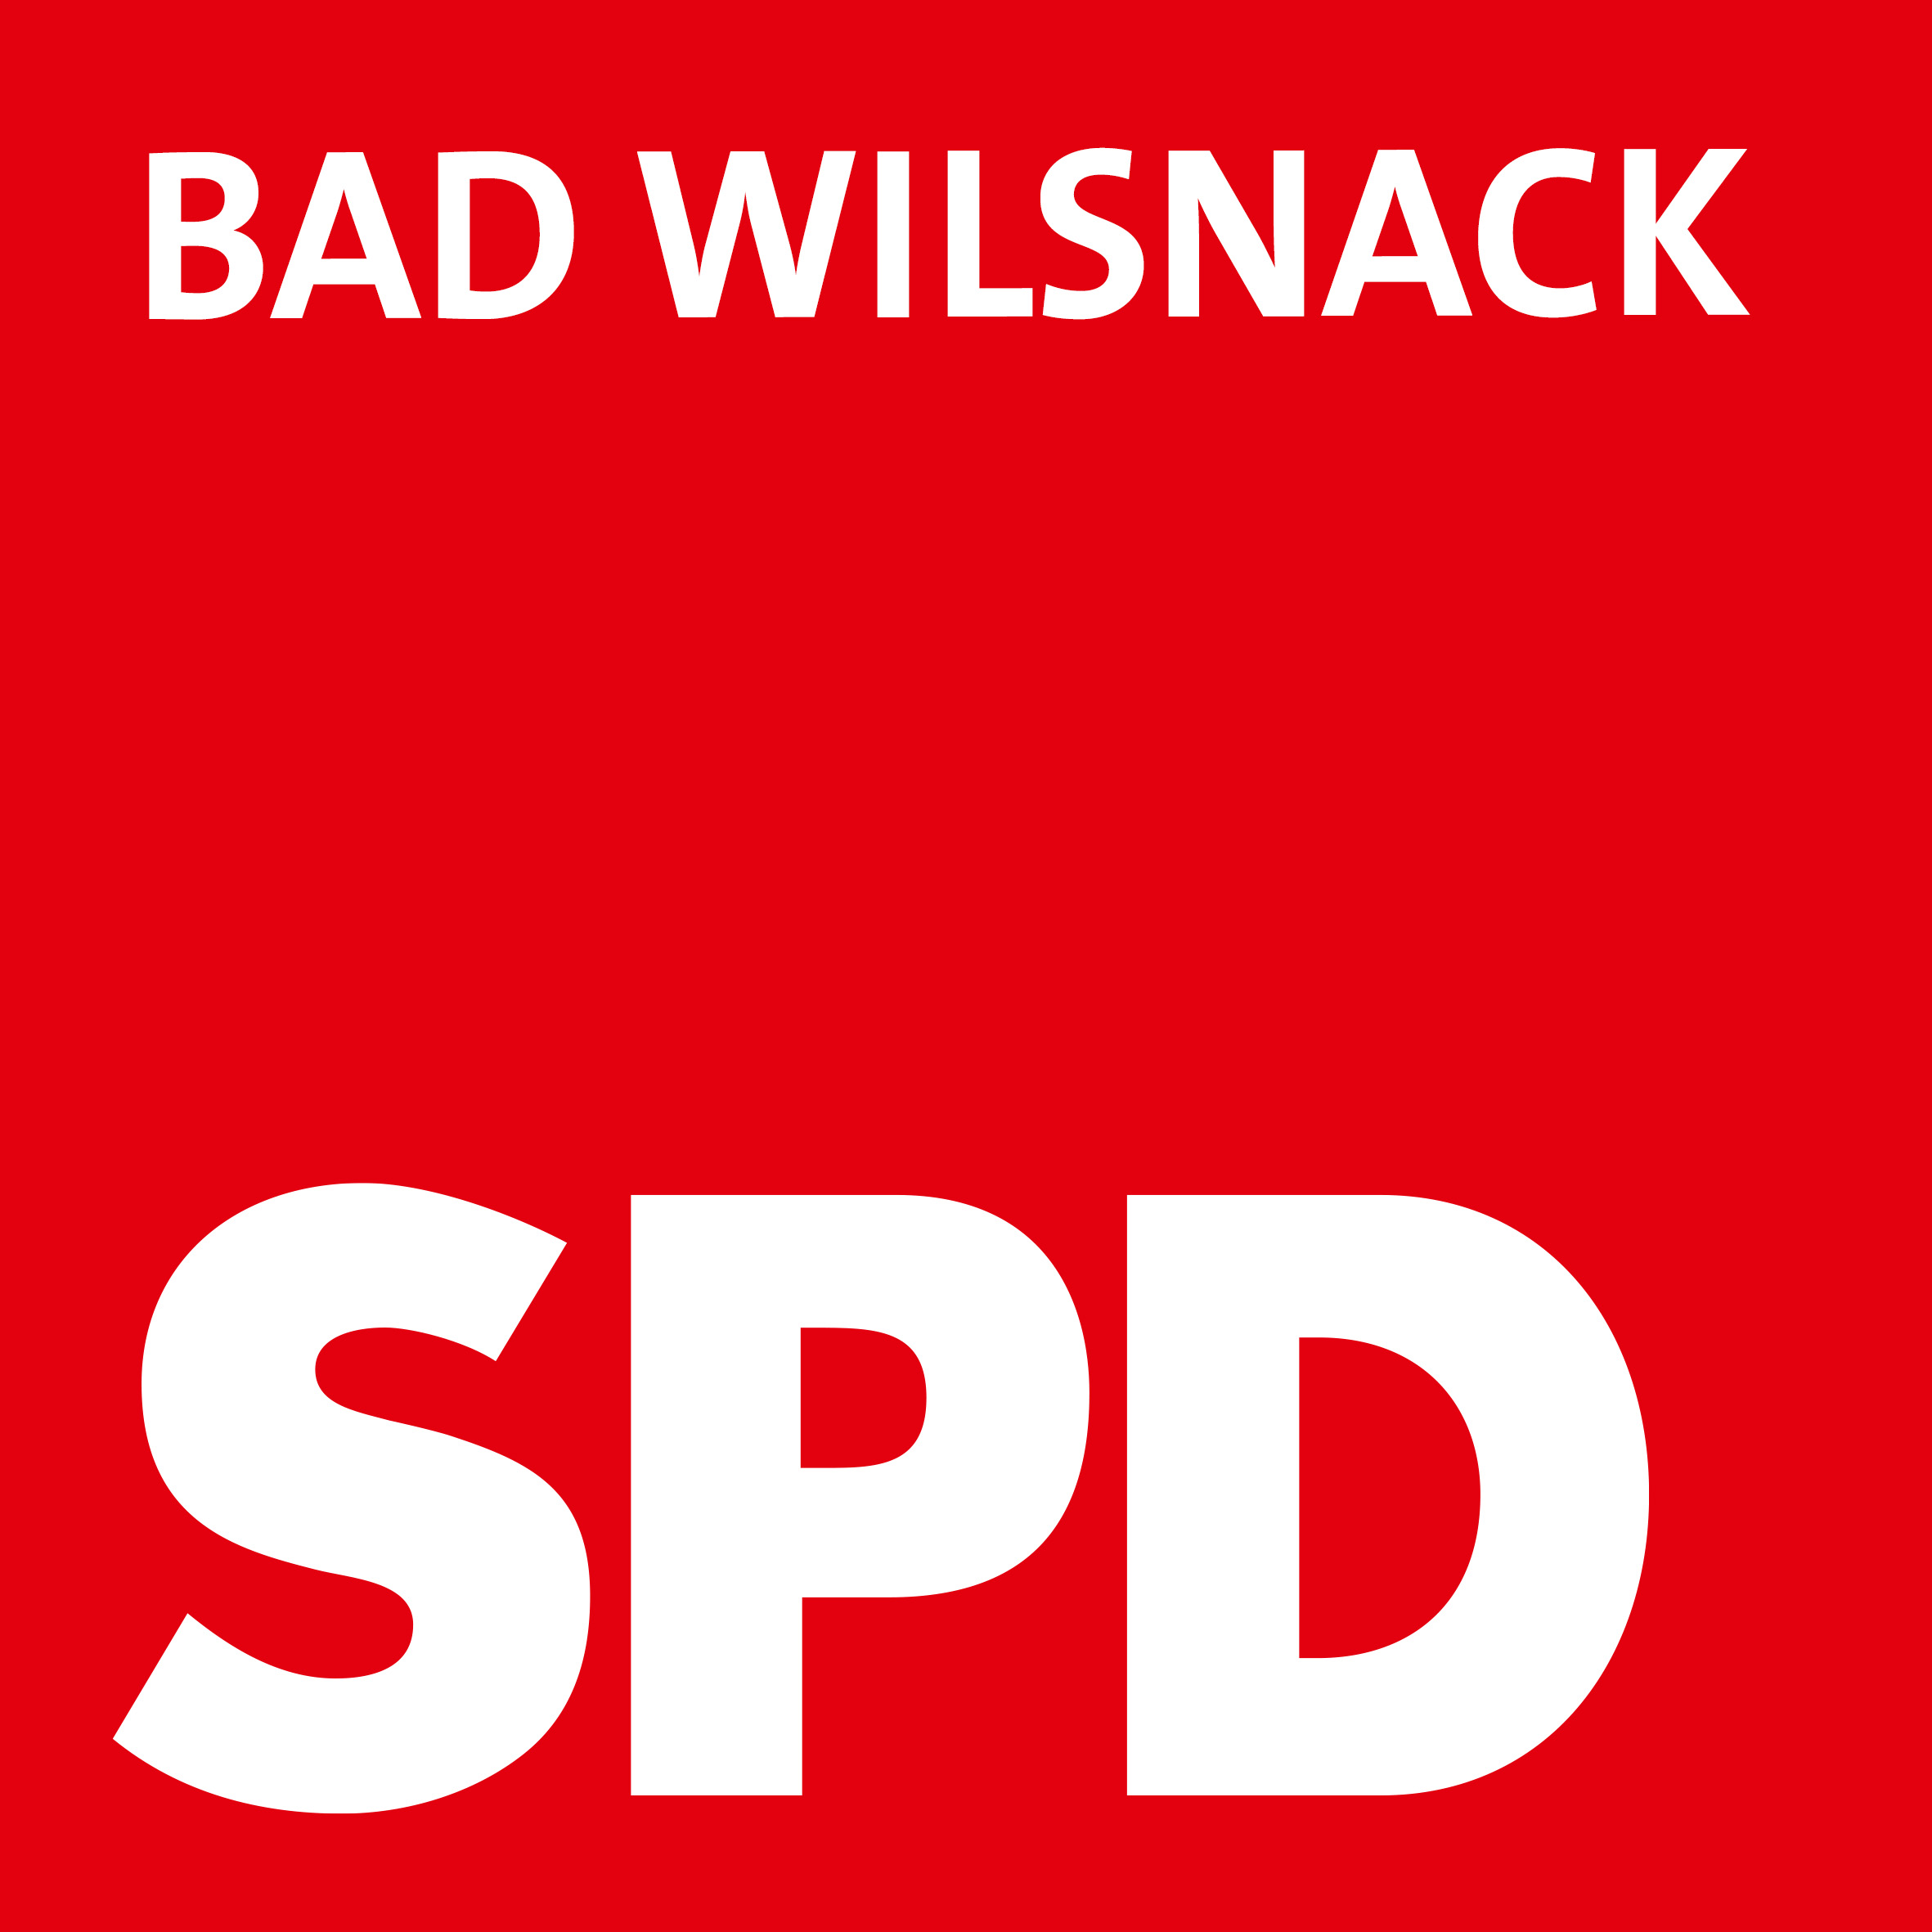 SPD Bad Wilsnack